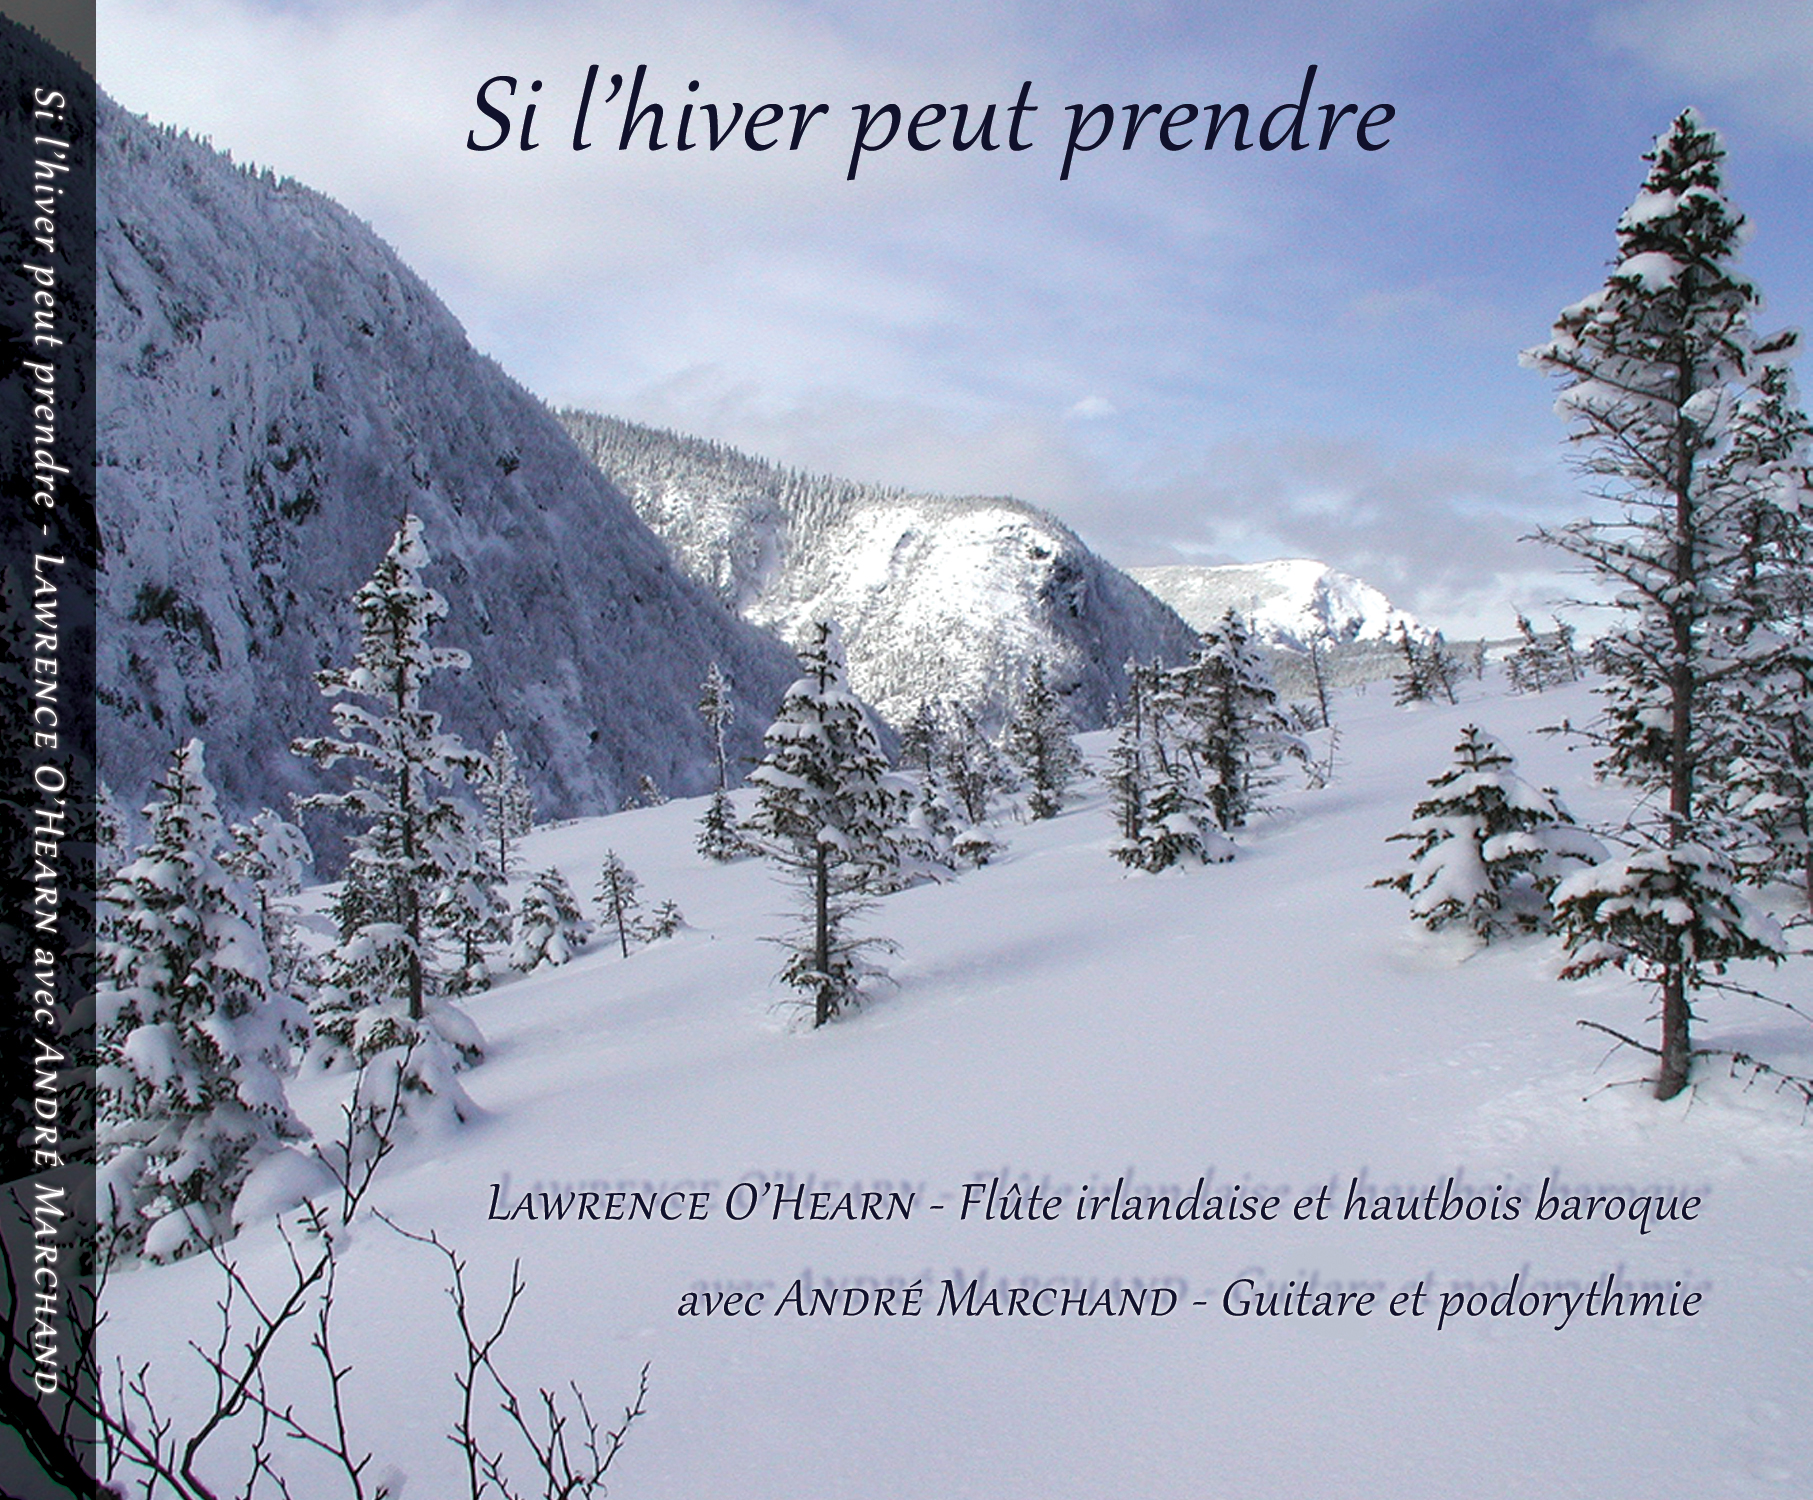 Lawrence O'Hearn – Si l'hiver peut prendre (CD Review